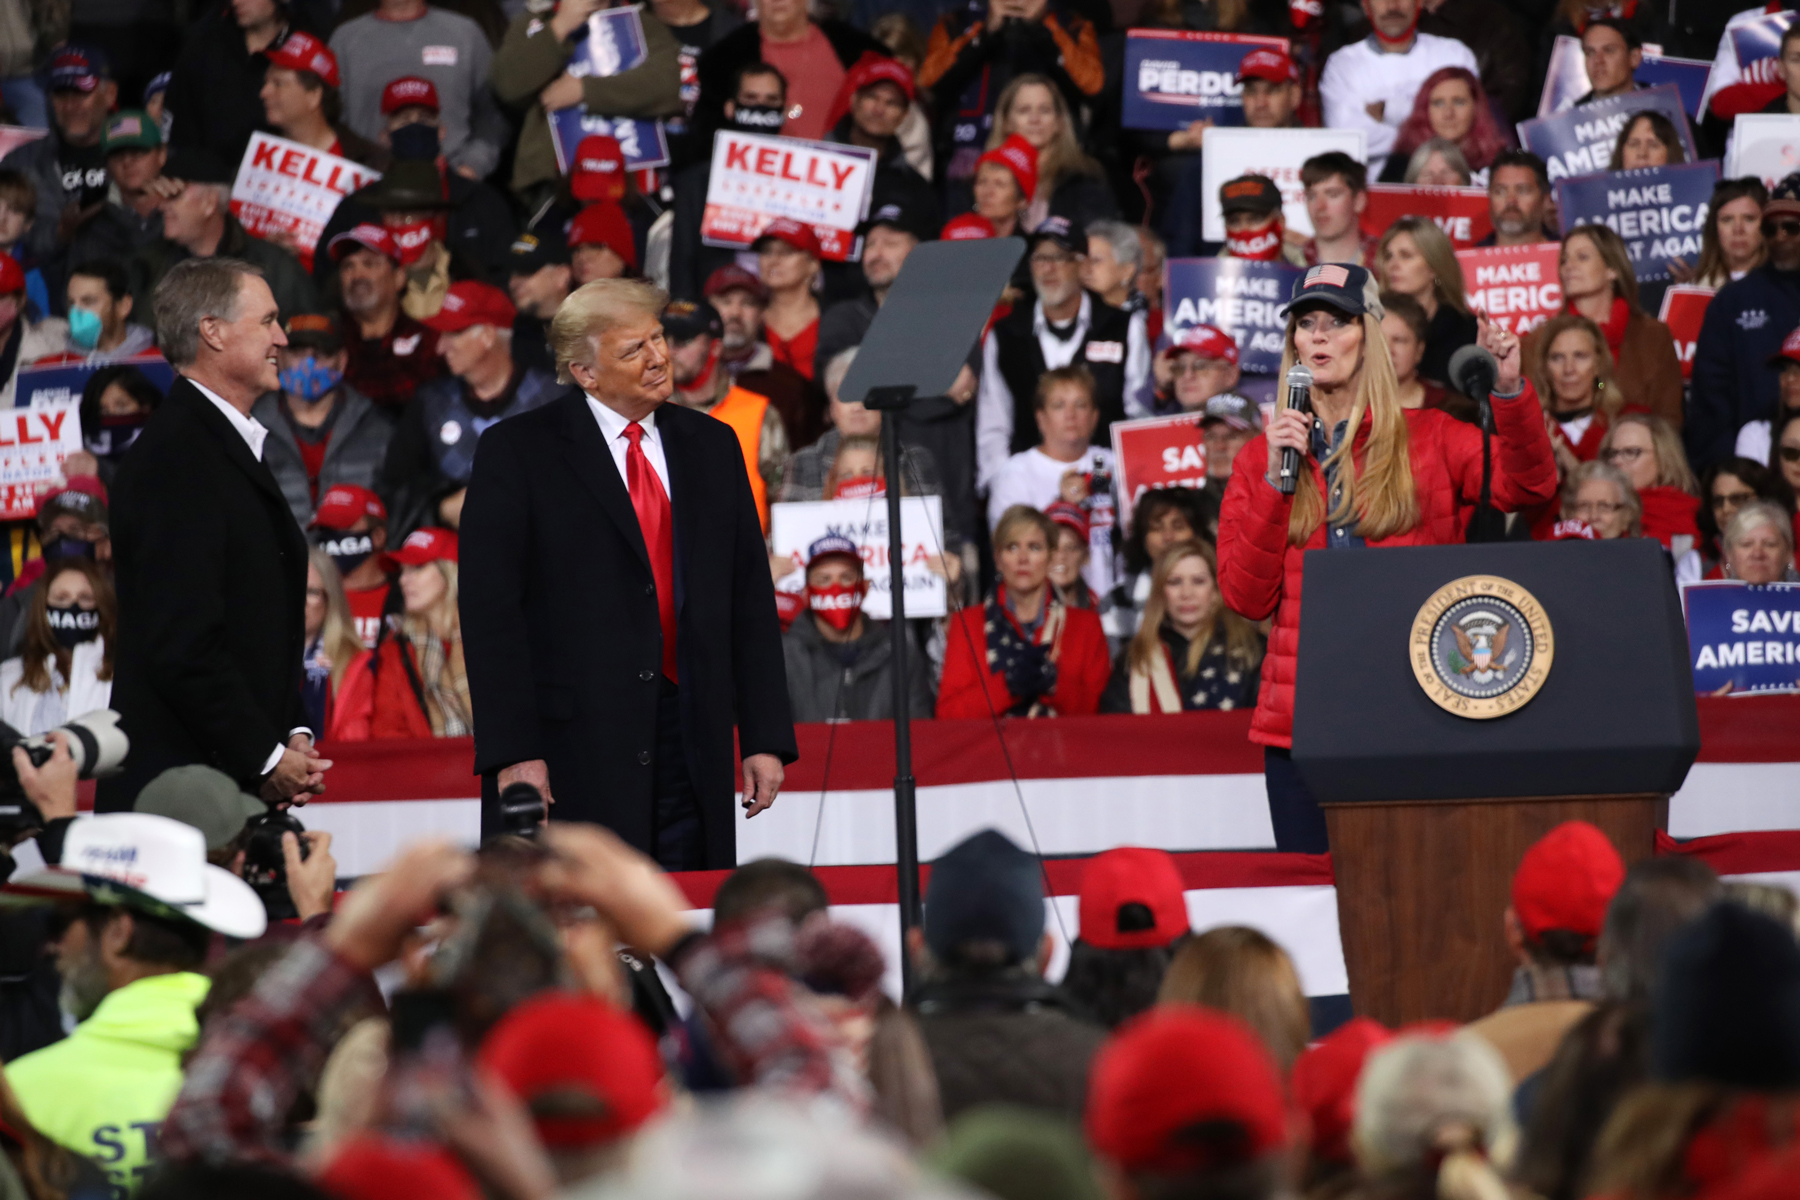 VALDOSTA, GEORGIA - DECEMBER 05: President Donald Trump attends a rally in support of Sen. David Perdue (R-GA) and Sen. Kelly Loeffler (R-GA) on December 05, 2020 in Valdosta, Georgia. The rally with the senators comes ahead of a crucial runoff election for Perdue and Loeffler on January 5th which will decide who controls the United States senate. (Photo by Spencer Platt/Getty Images)